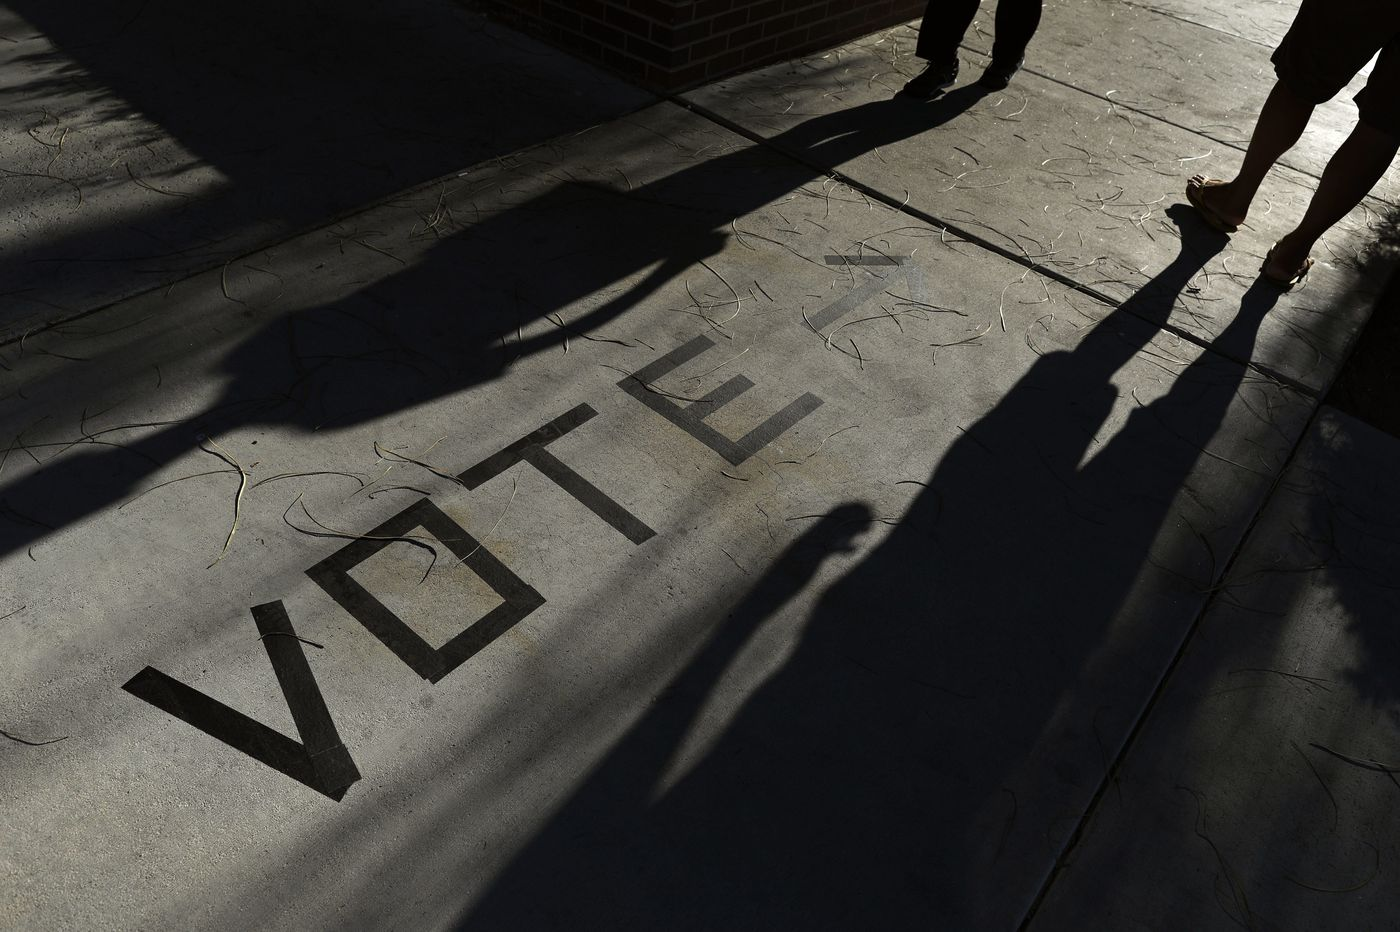 Here's who will win the presidency in 2020 and what factors could change the outcome | Opinion